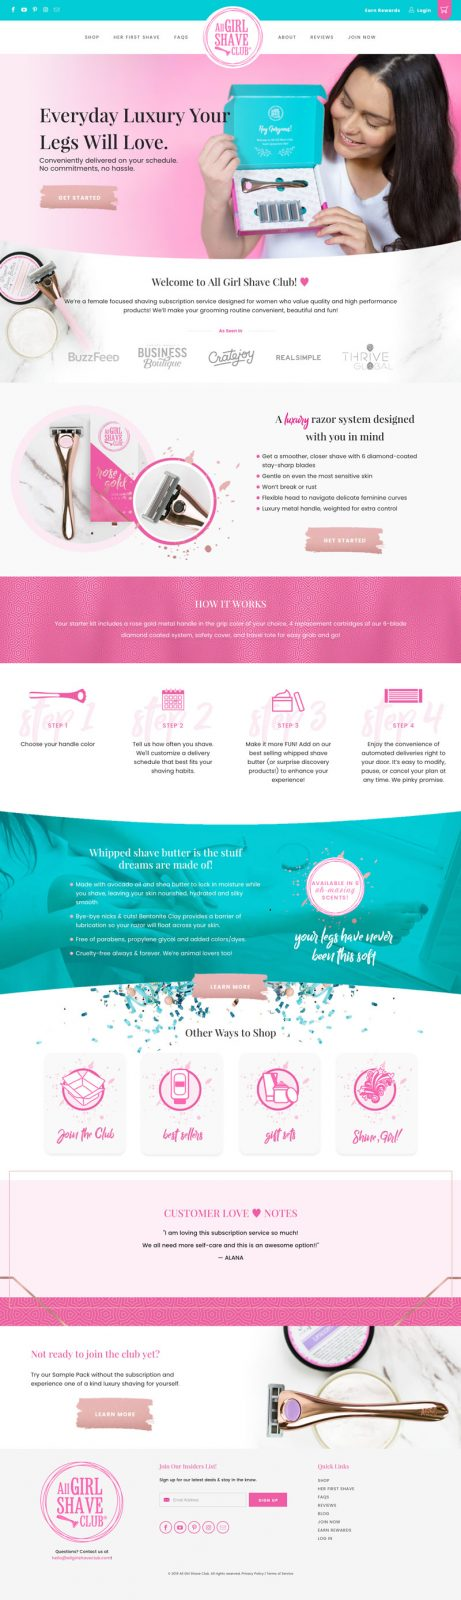 all girl shave club homepage